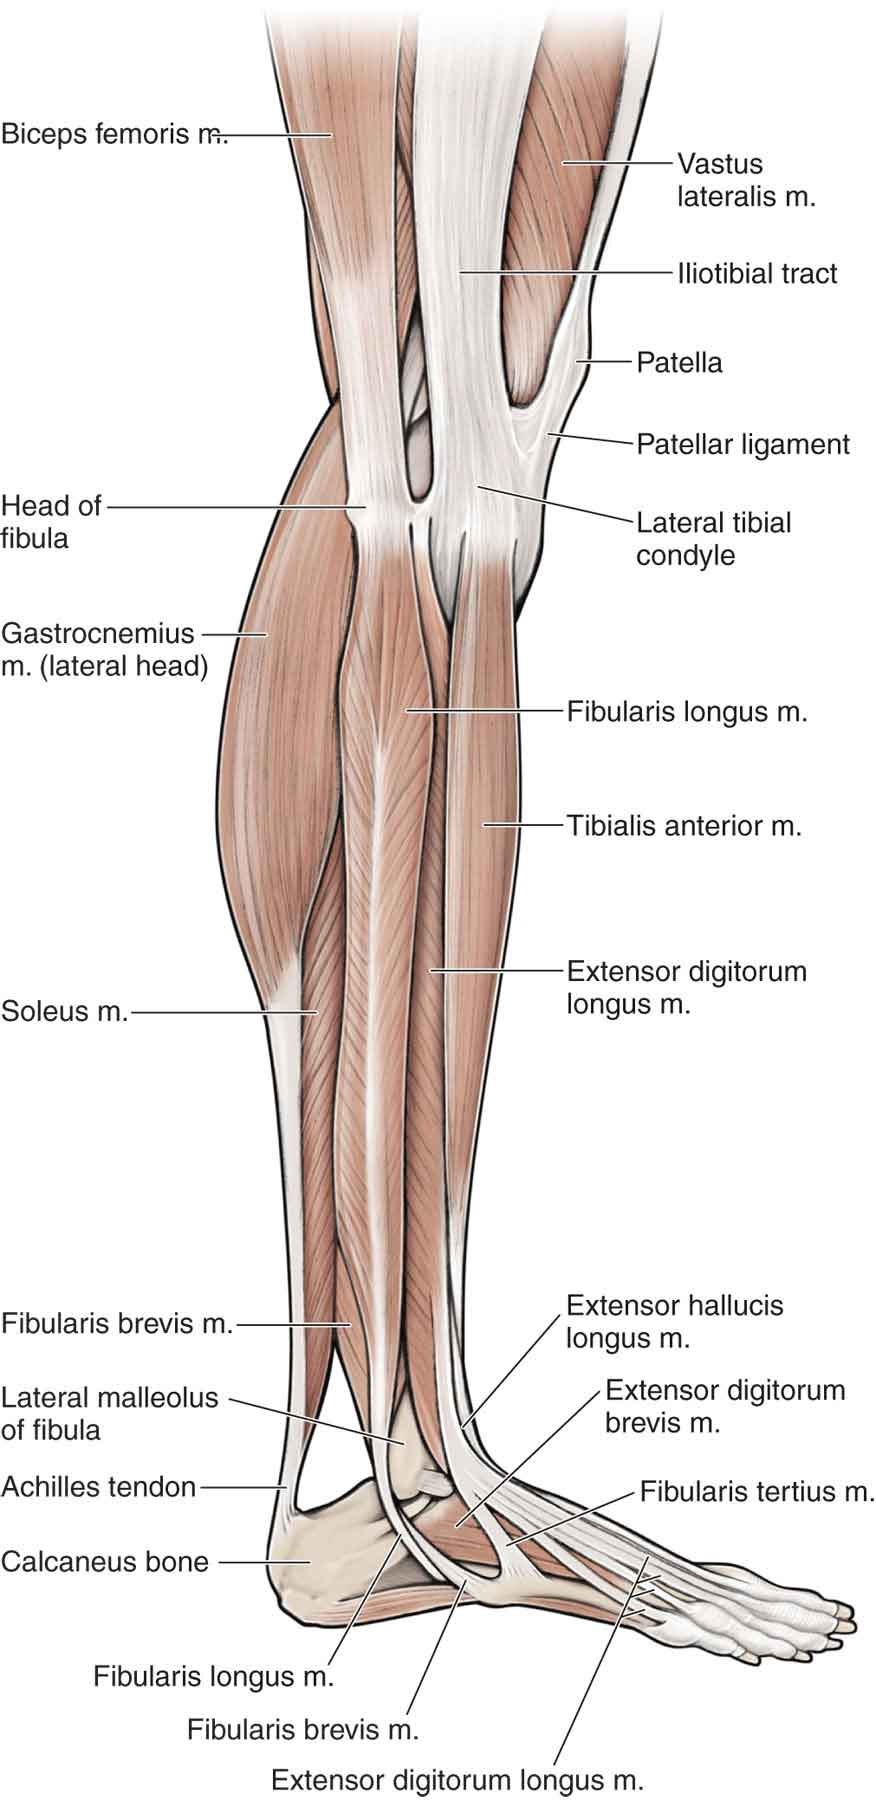 Anatomy of the ankle and lower leg